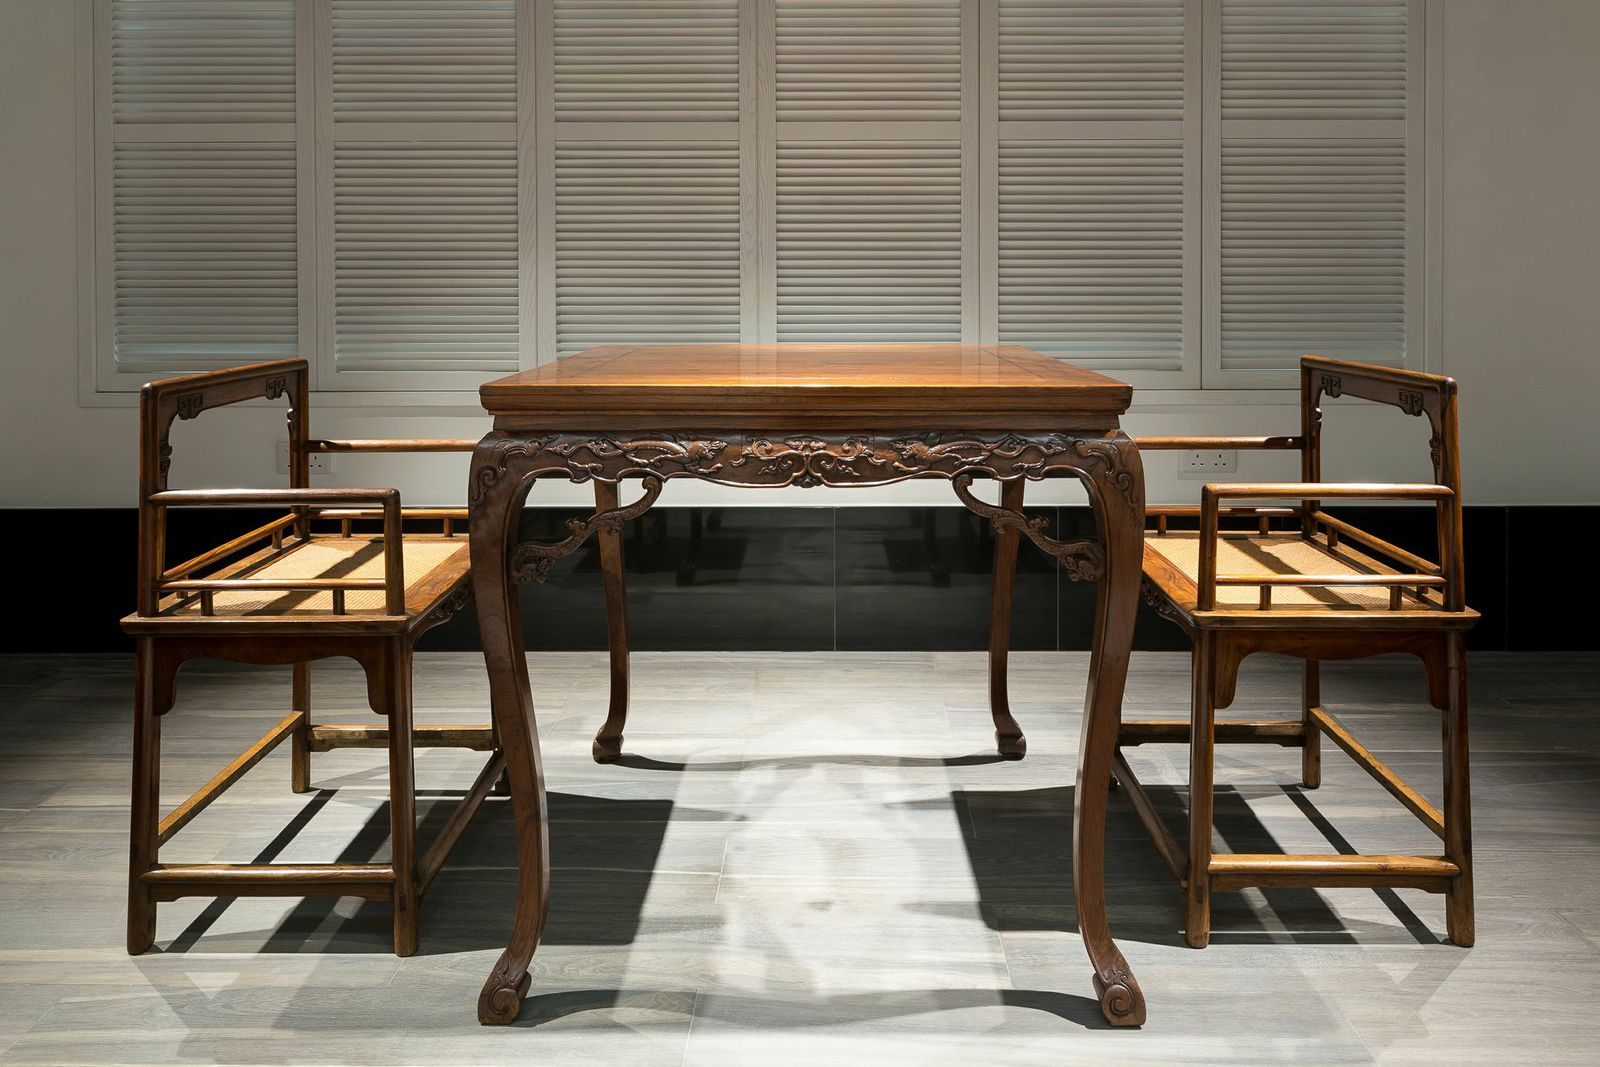 15 beautiful furniture collections at the world u0027s museums curbed